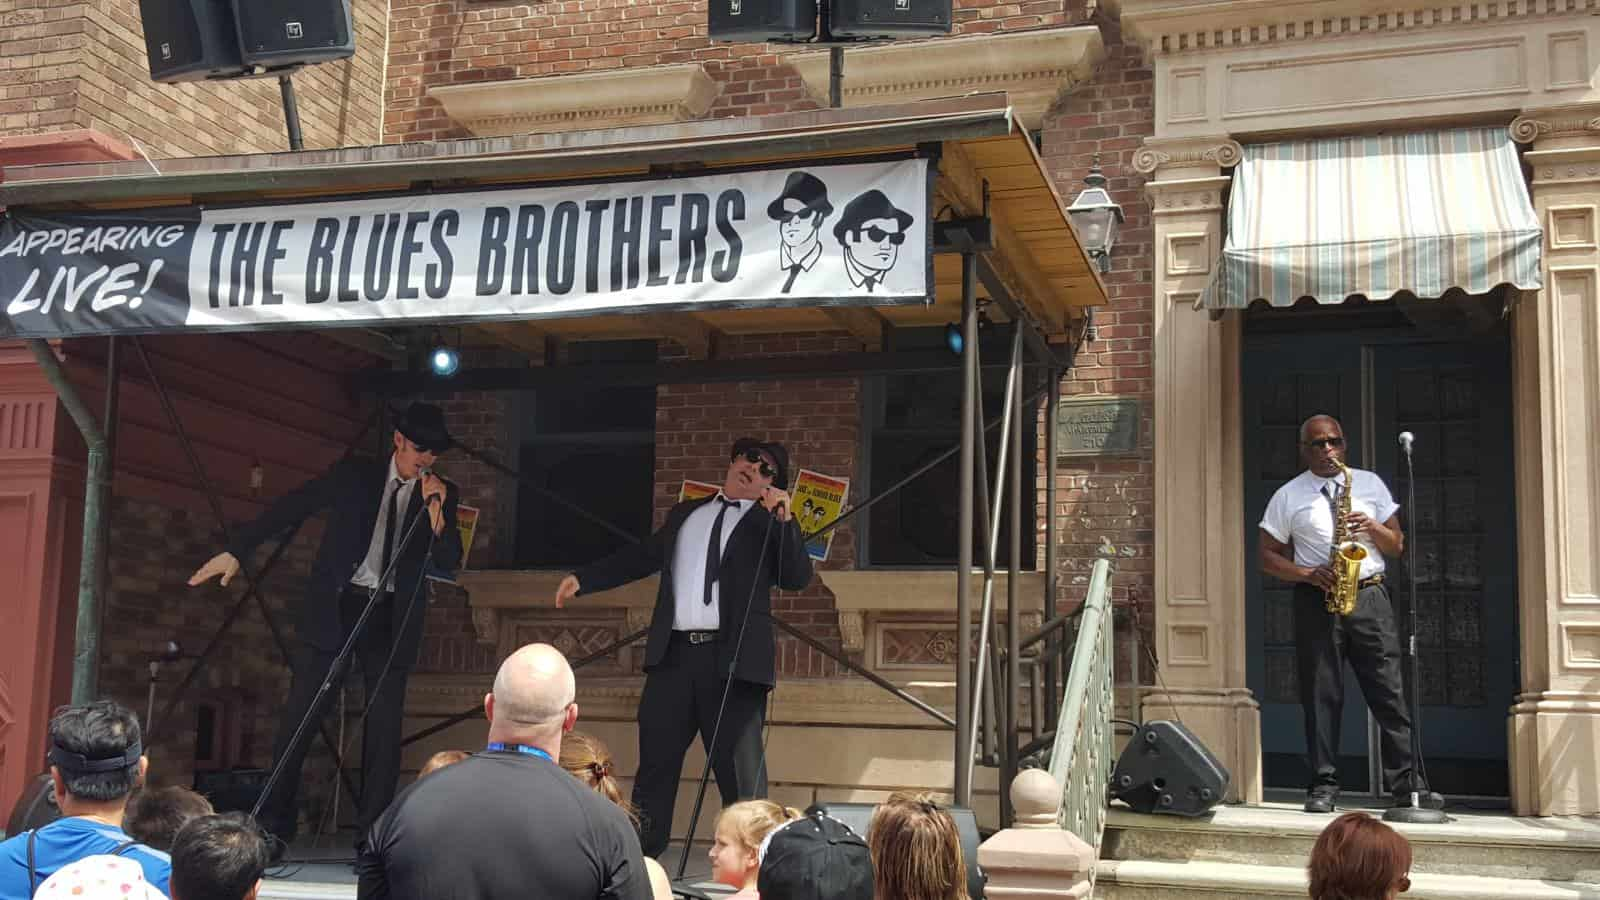 The Blues Brothers Show Universal Studios Orlando